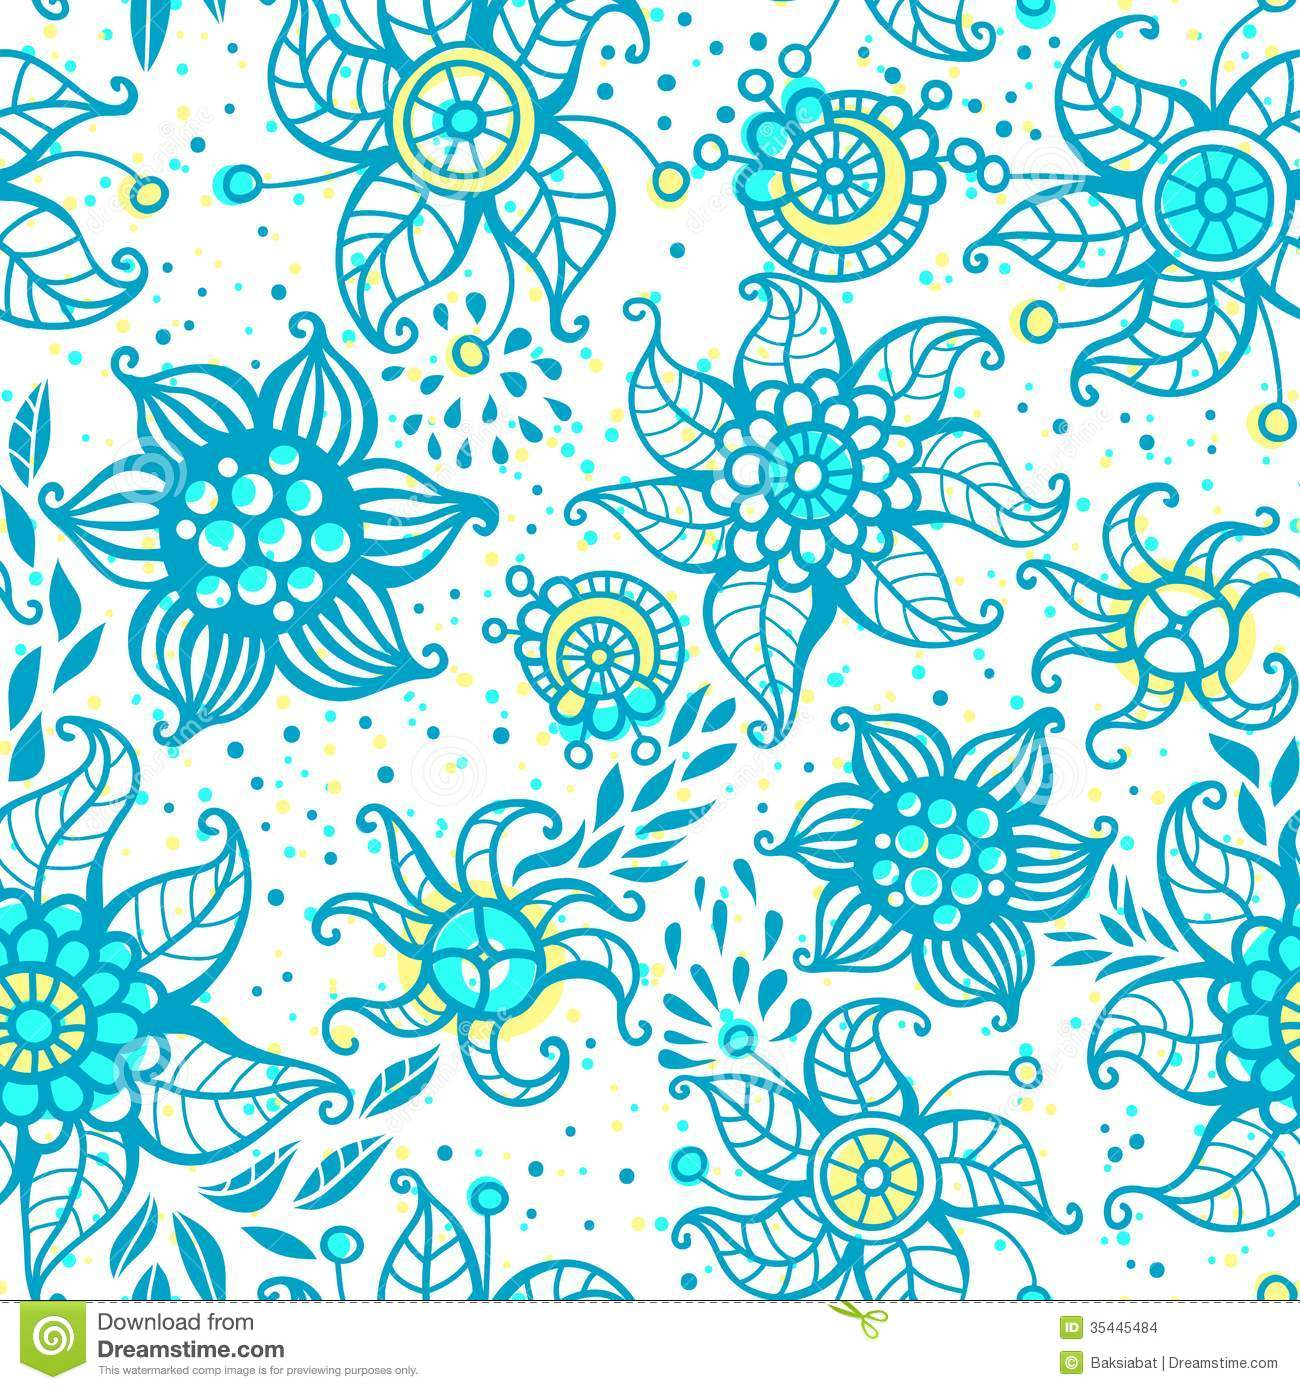 Can I Put Wallpaper On Top Of Wallpaper: Cute Floral Seamless Pattern Stock Images